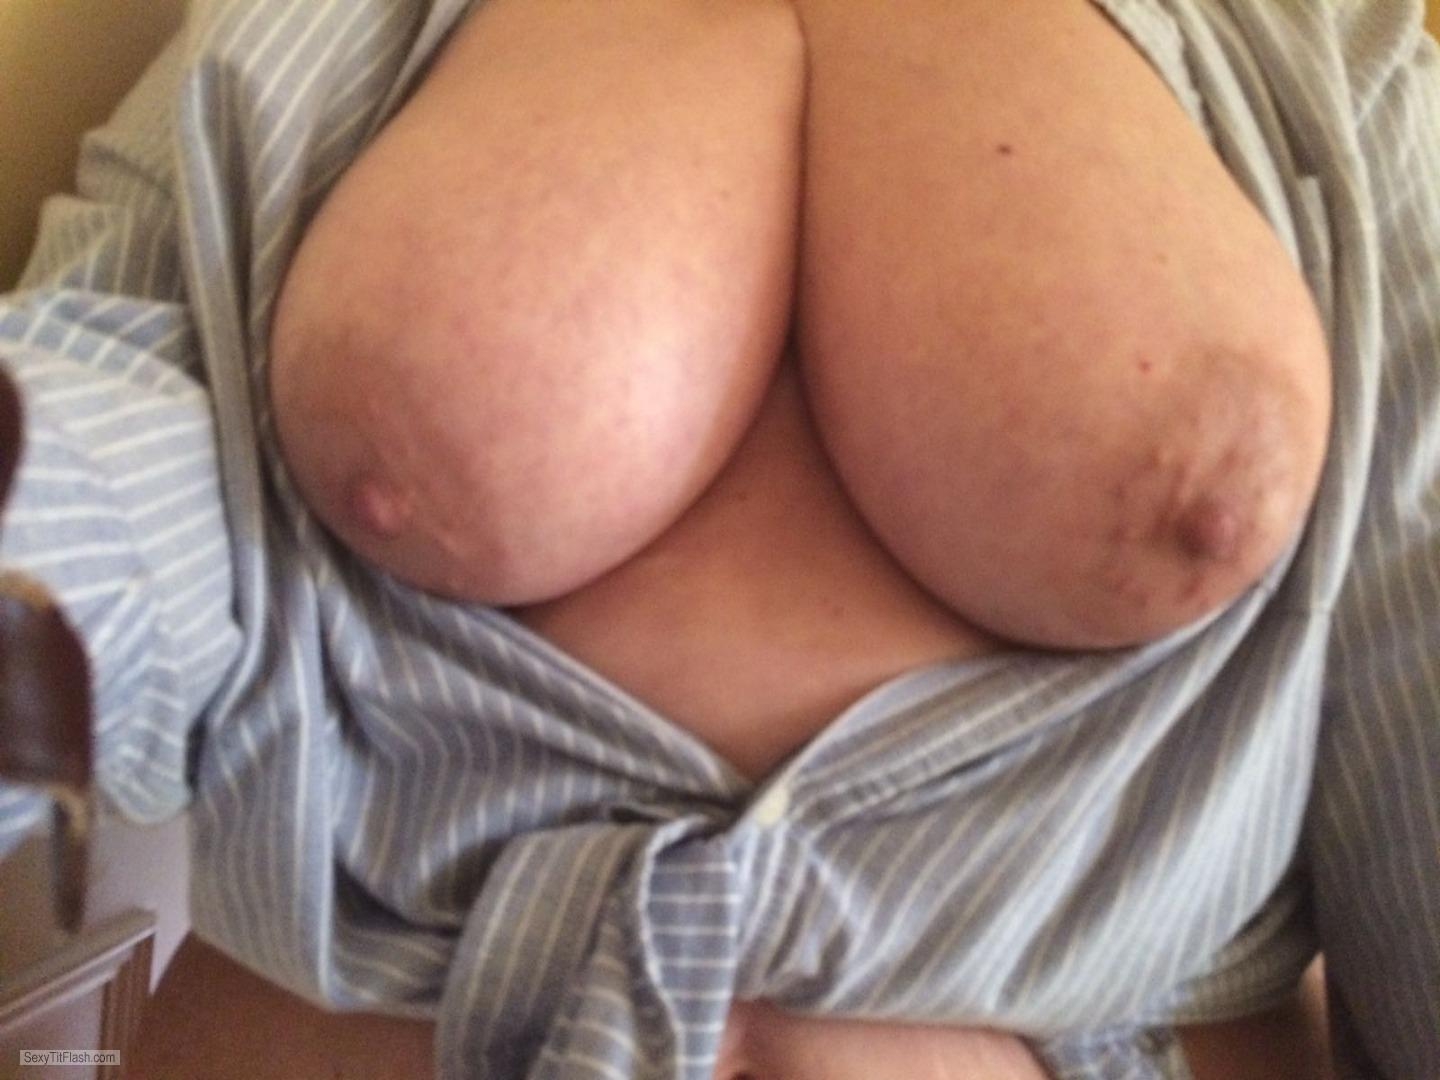 Tit Flash: Wife's Very Big Tits (Selfie) - Lydia from United Kingdom